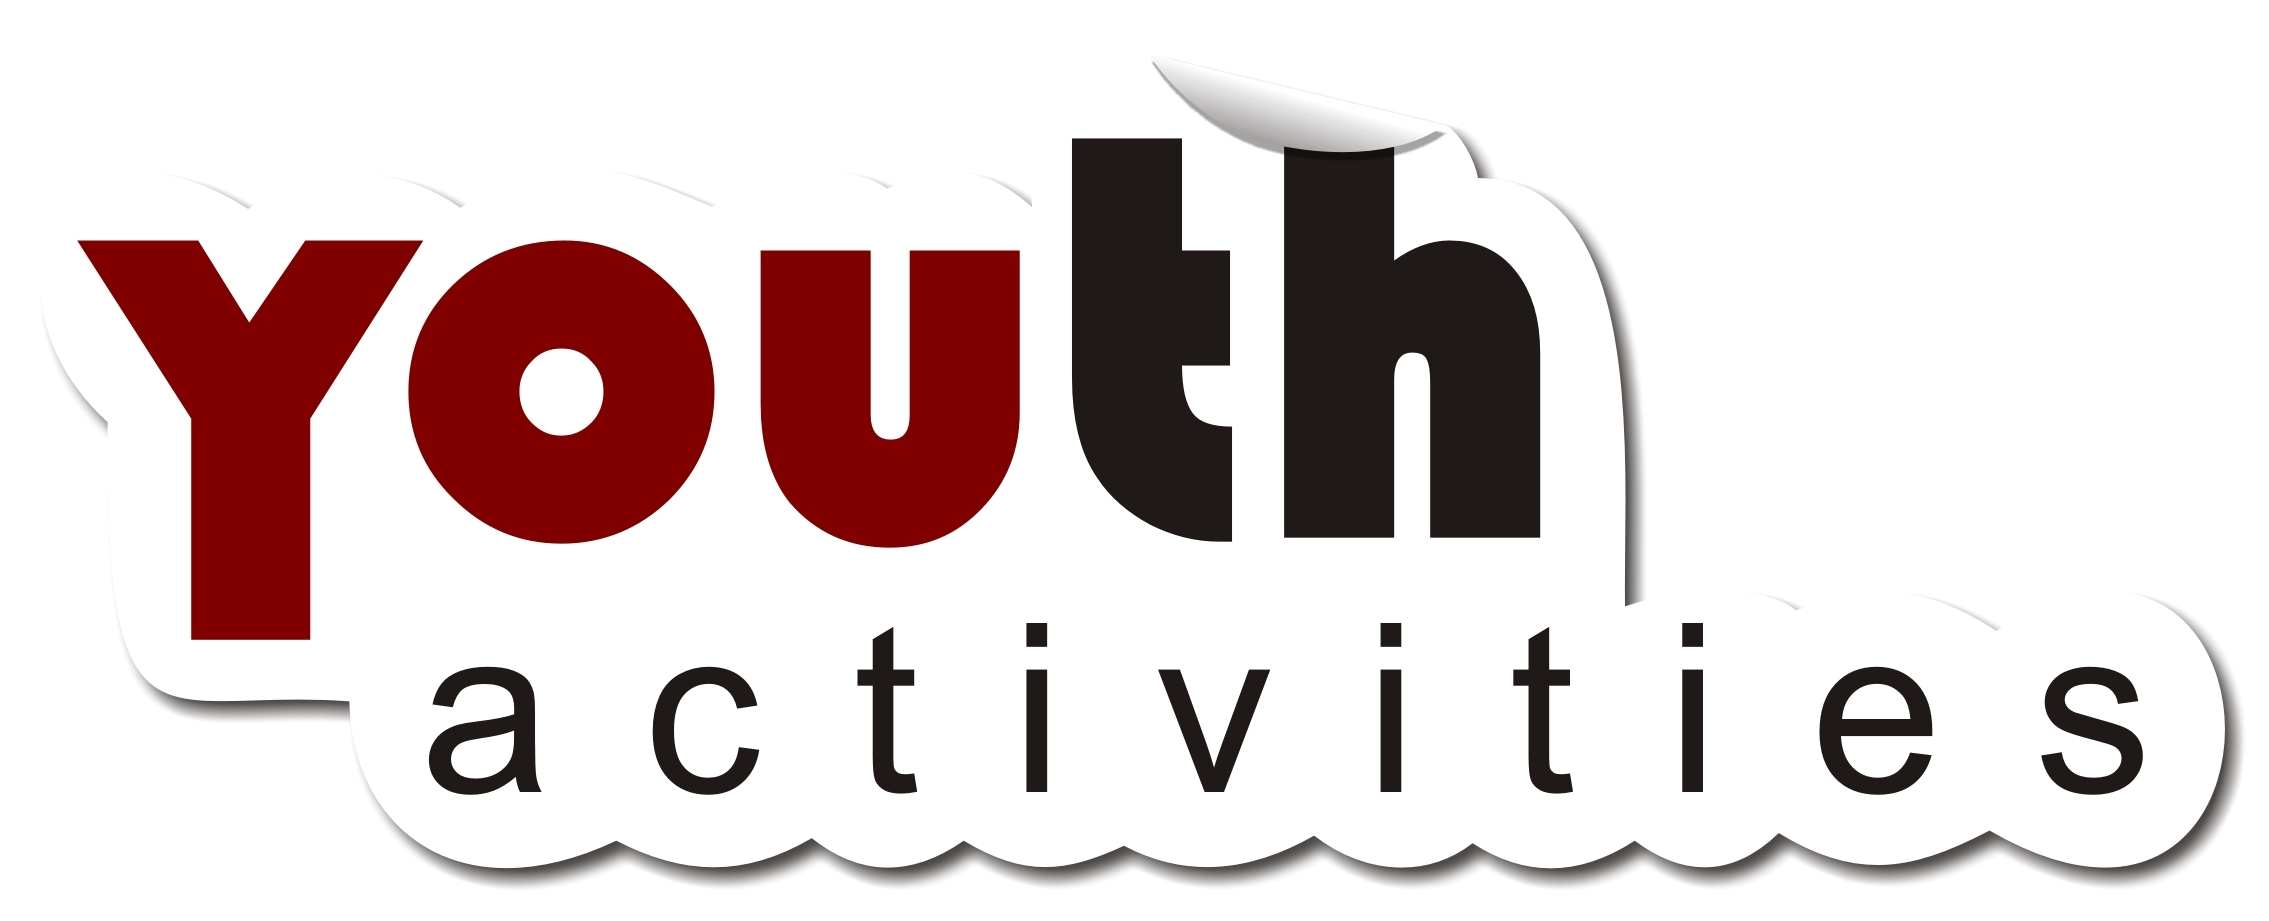 Youth Activities   Free Images At Clker Com   Vector Clip Art Online